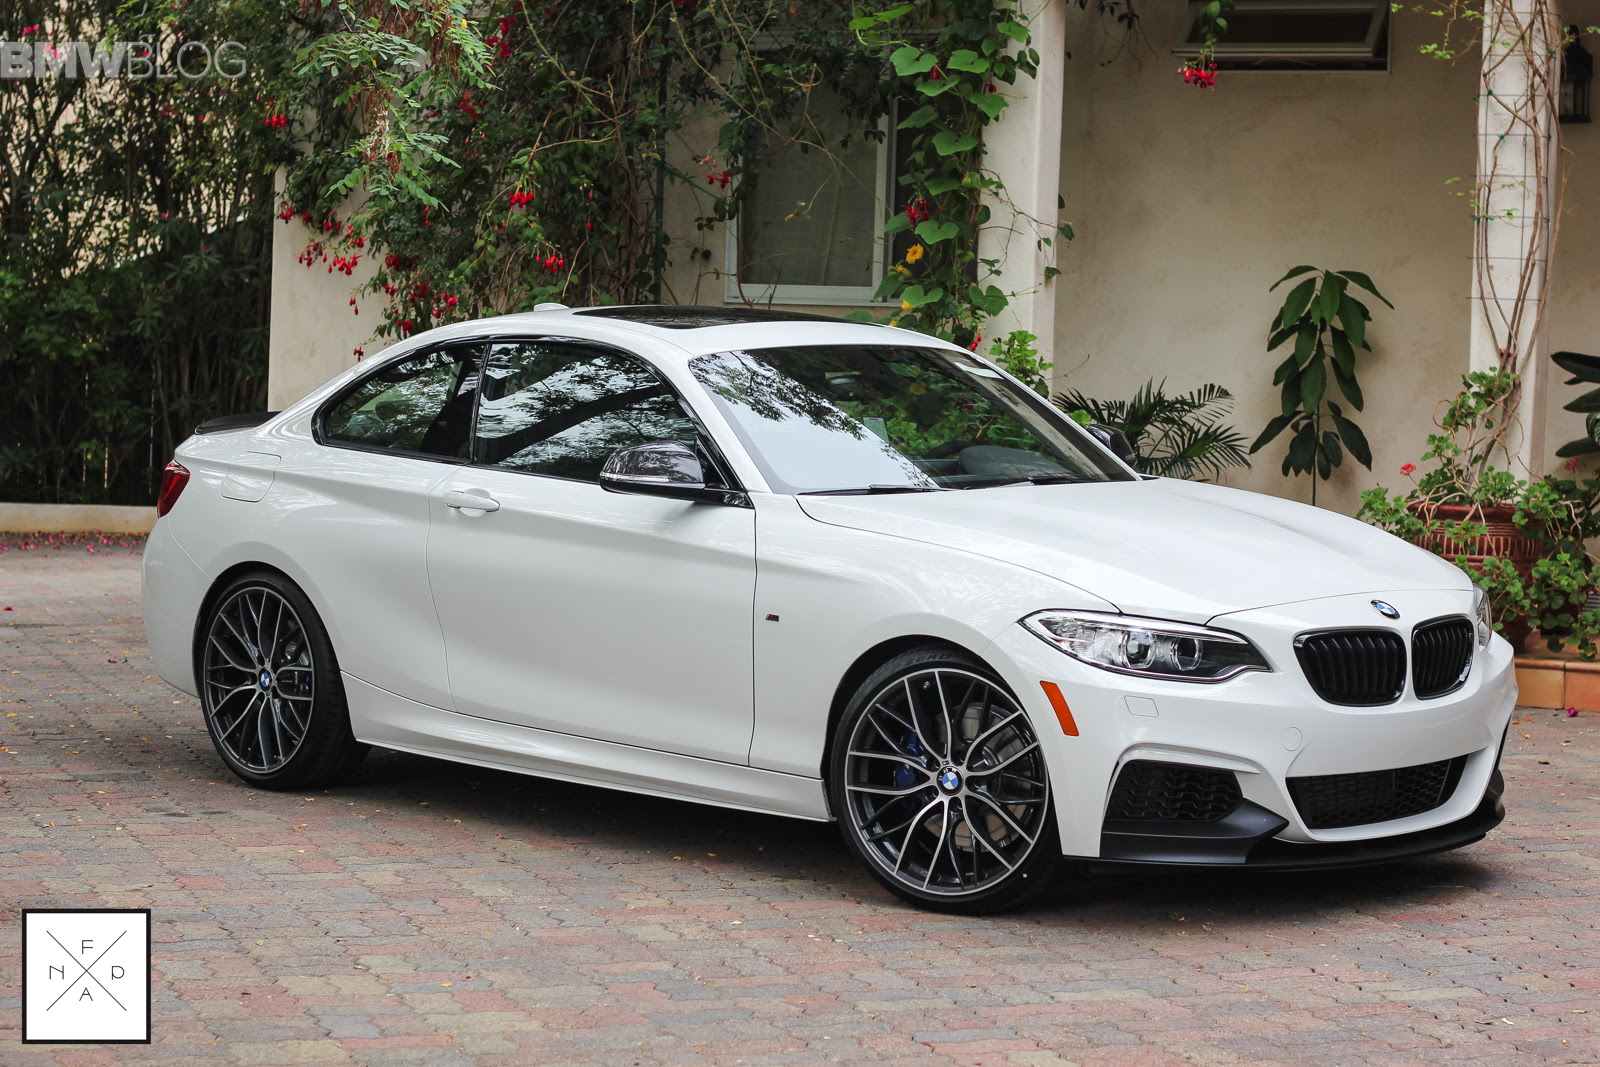 2014 BMW M235i with M Performance Parts  Photoshoot